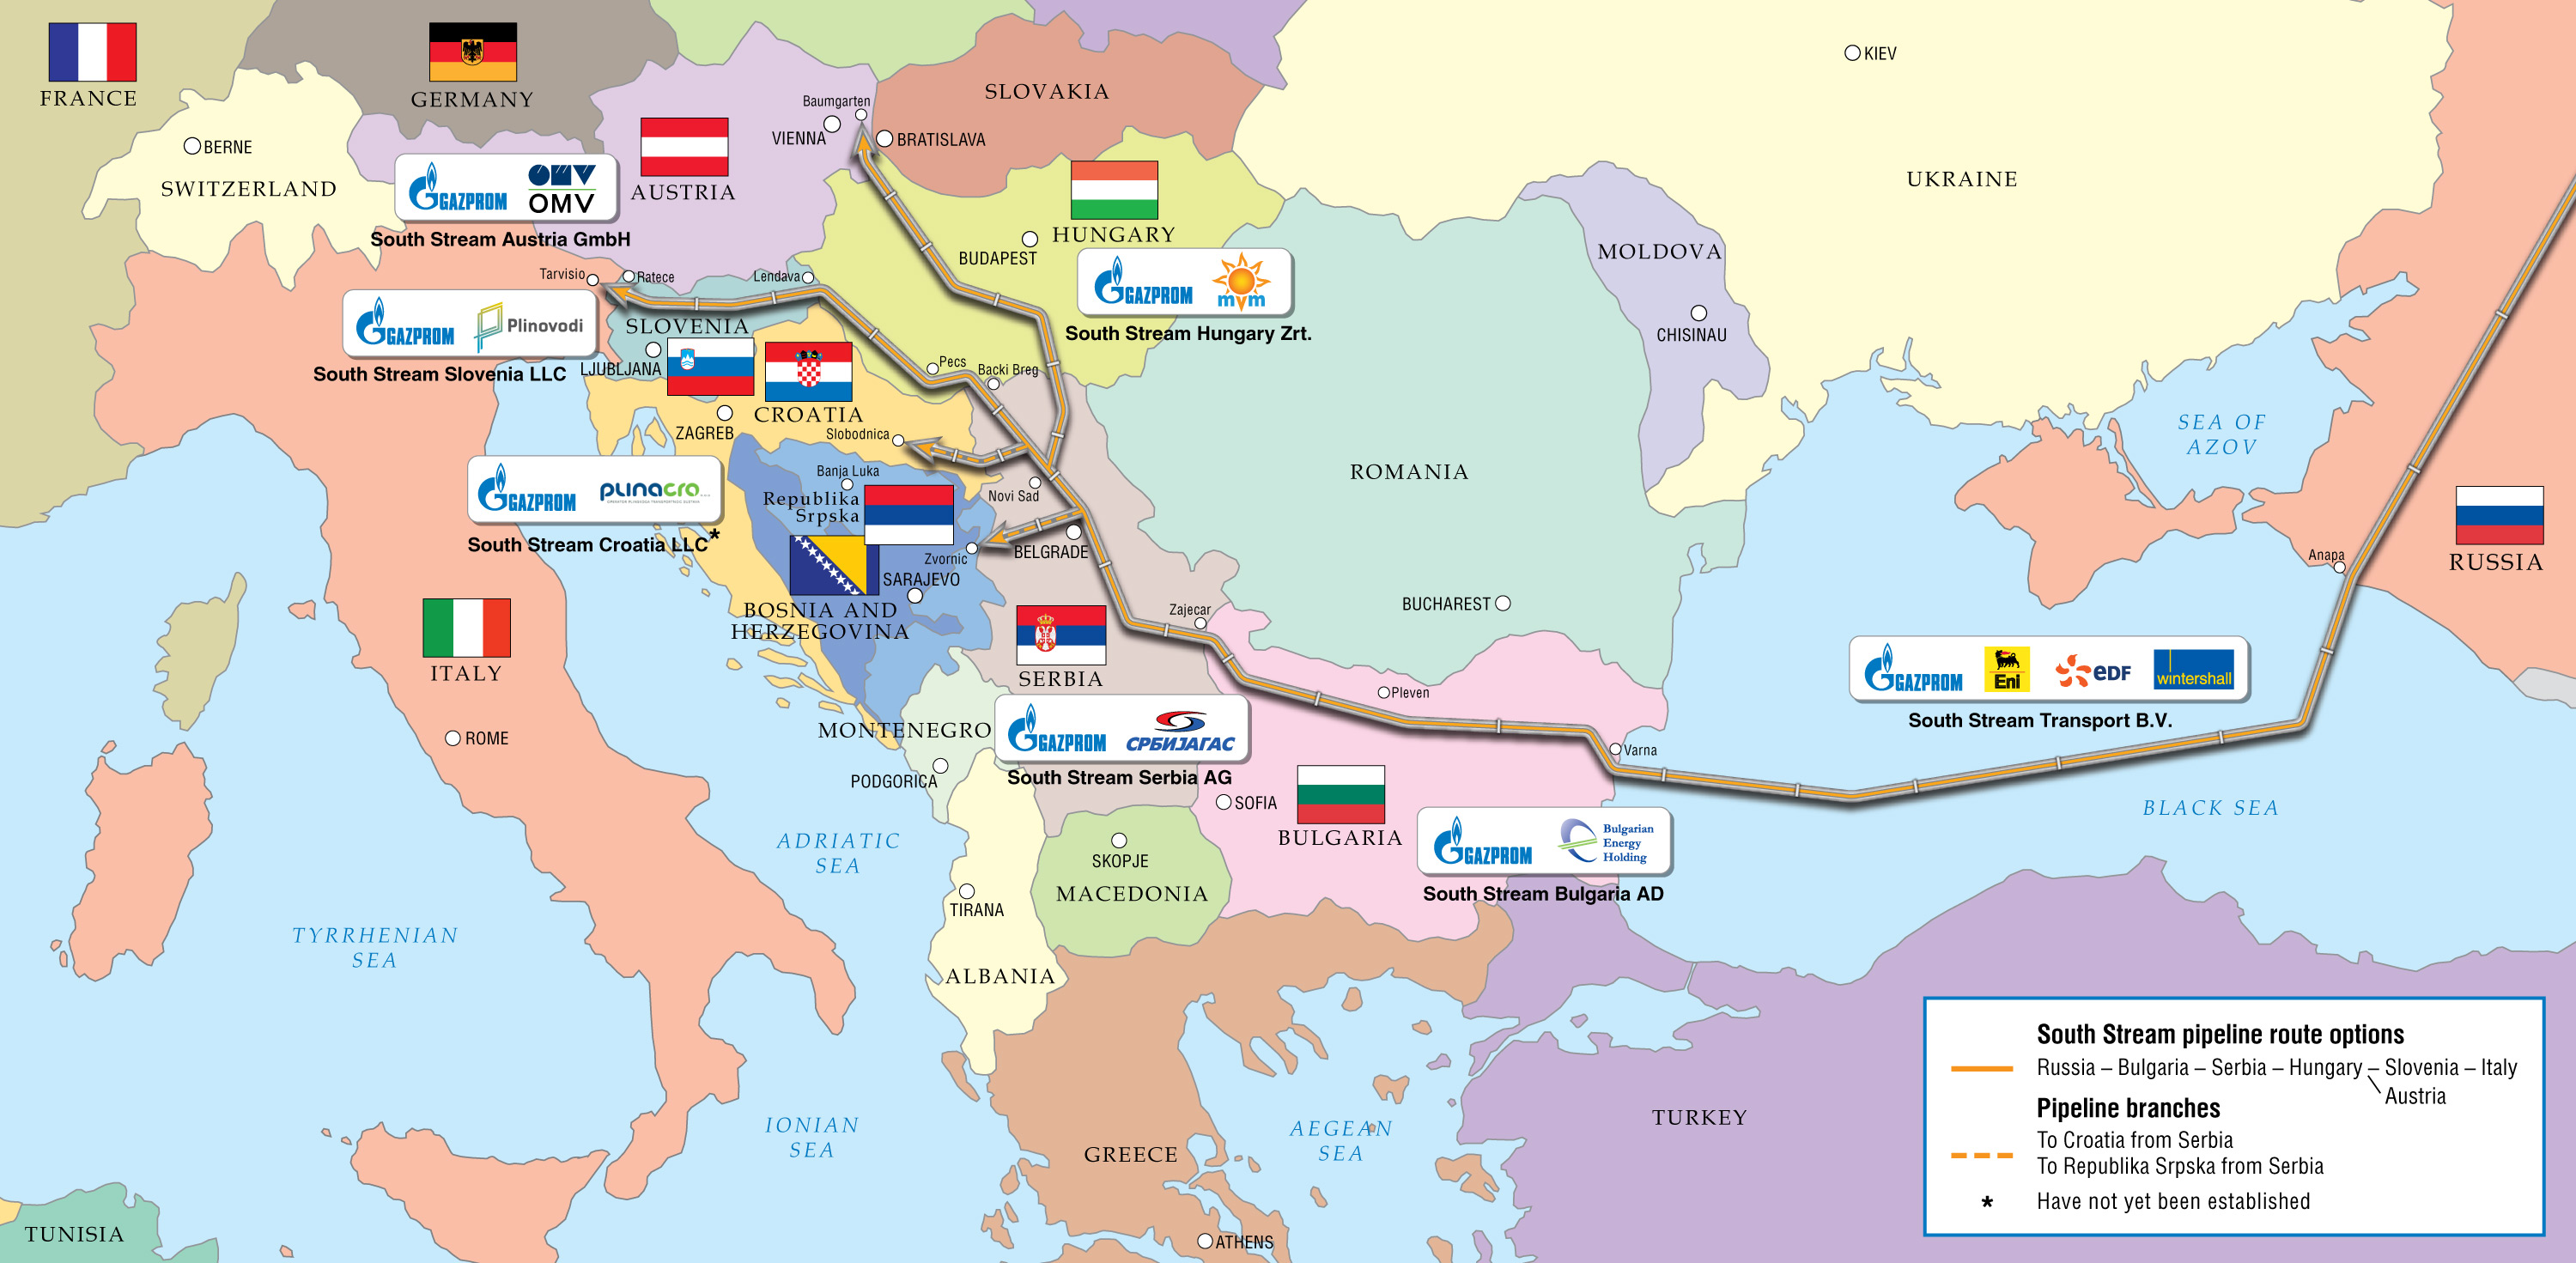 South Stream and partners